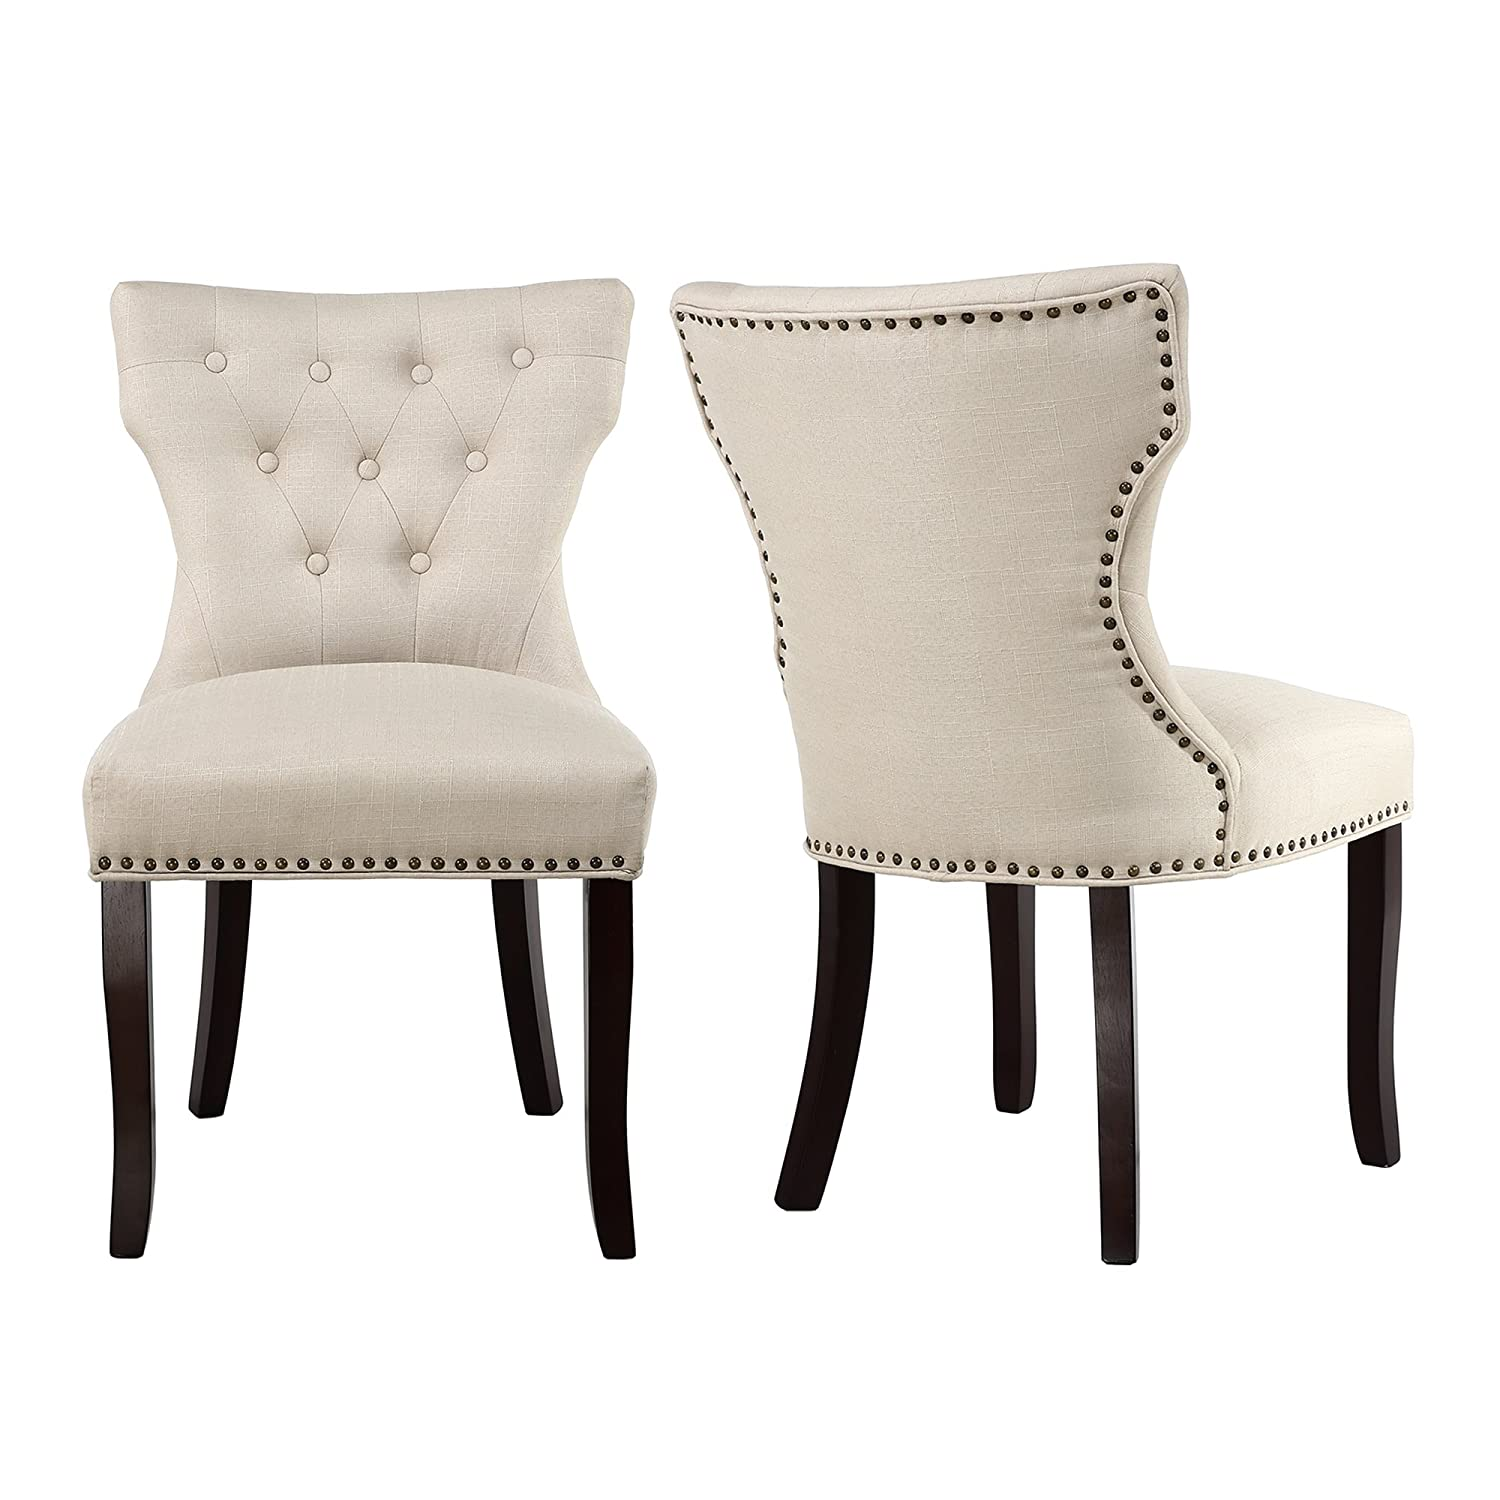 Amazon.com - LSSBOUGHT Set of 2 Fabric Dining Chairs Leisure Padded Chairs with Brown Solid Wooden Legs Nailed Trim (Beige) - Chairs  sc 1 st  Amazon.com & Amazon.com - LSSBOUGHT Set of 2 Fabric Dining Chairs Leisure Padded ...